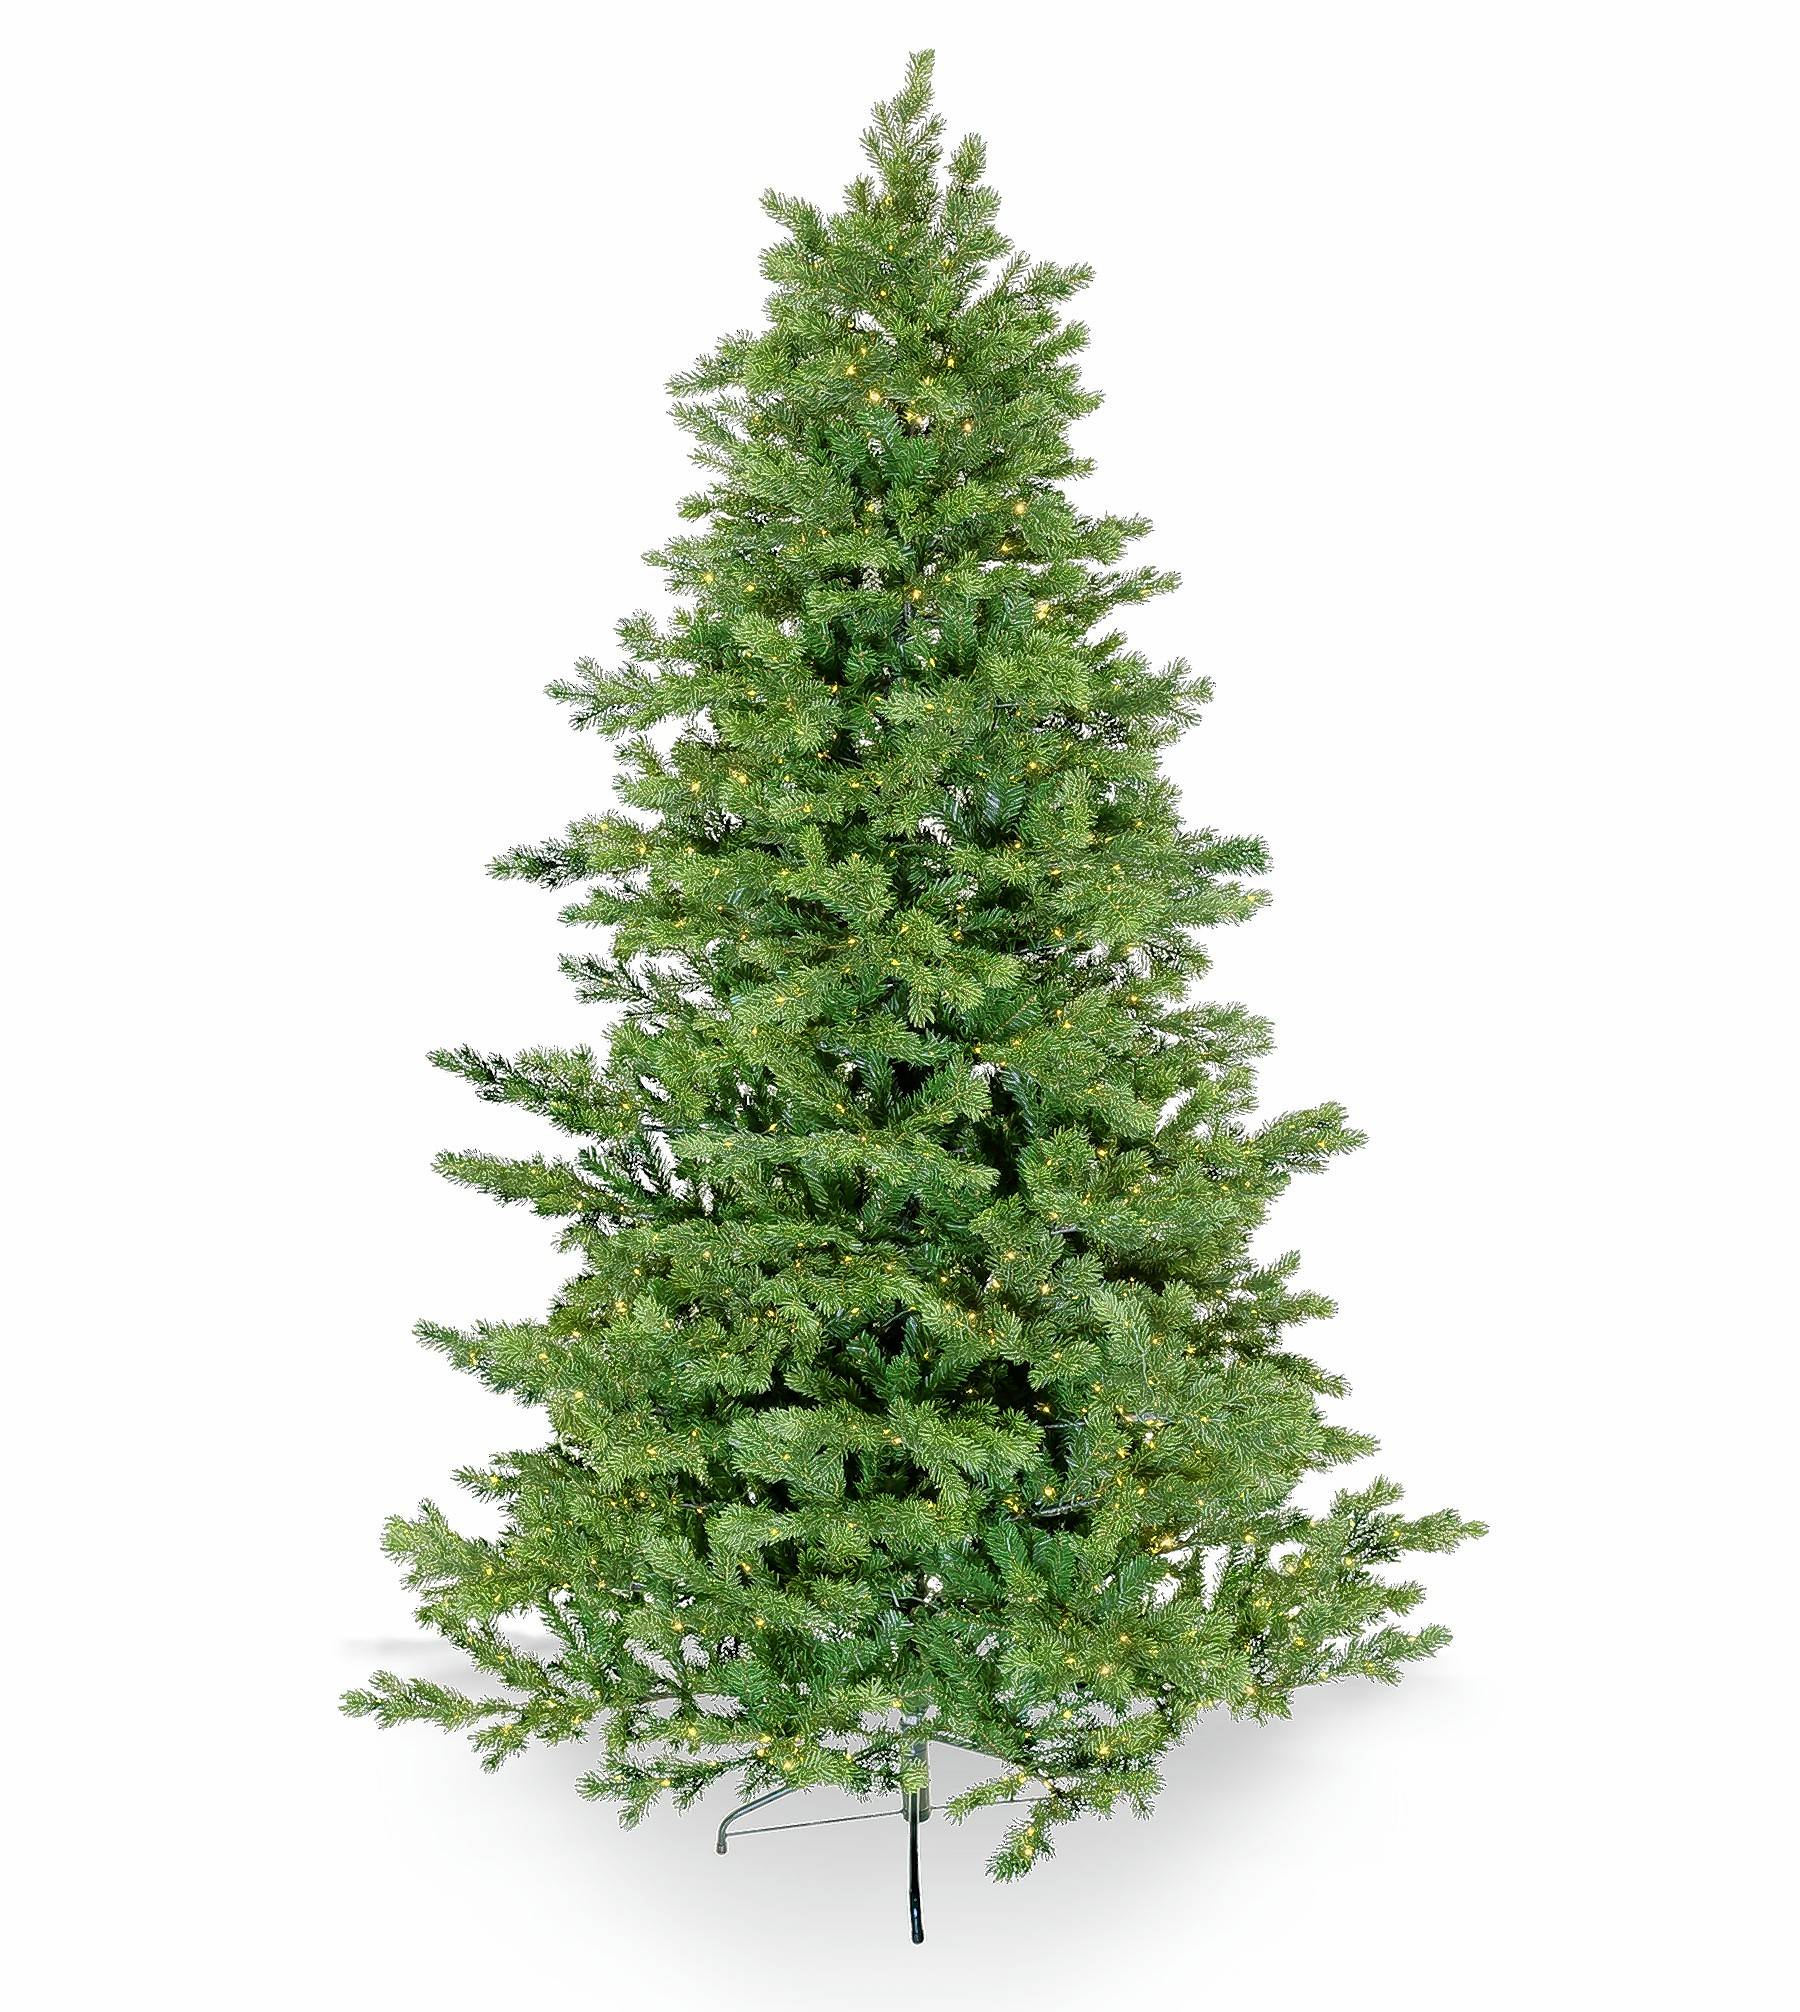 The 7½-foot Freeman Fir artificial Christmas tree has 1,500 LED lights.